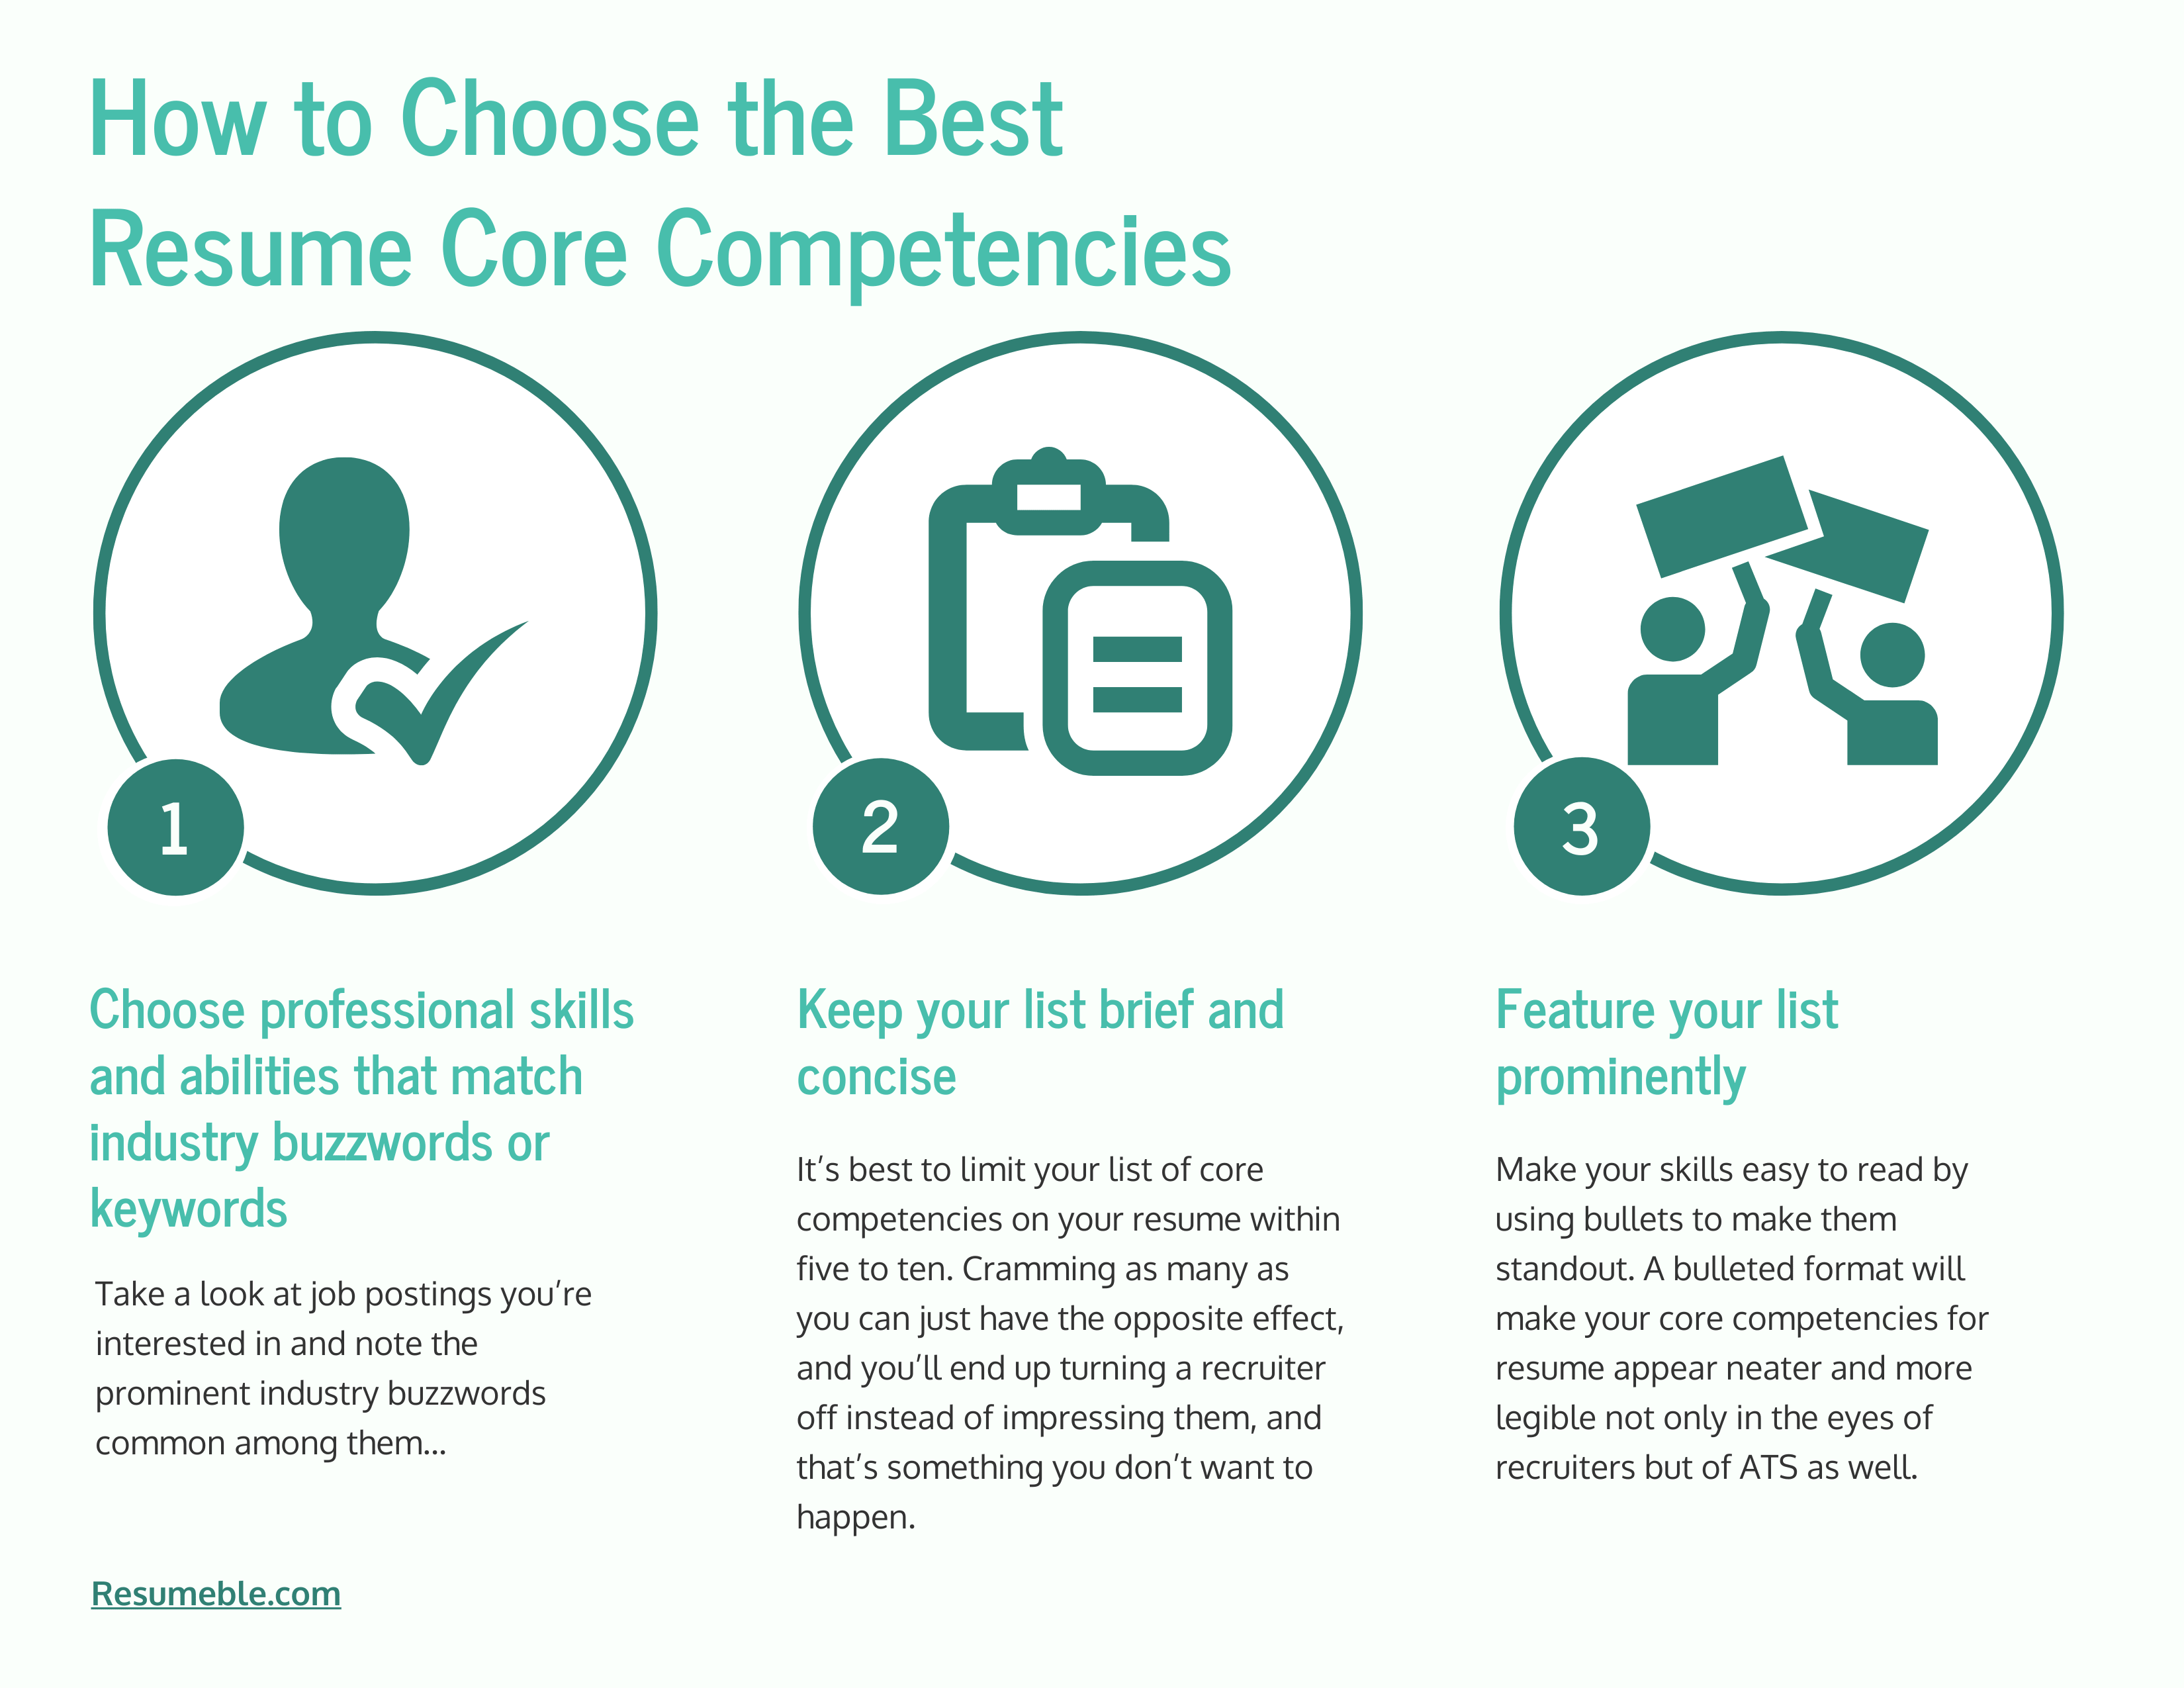 the best core competencies for resume infographic